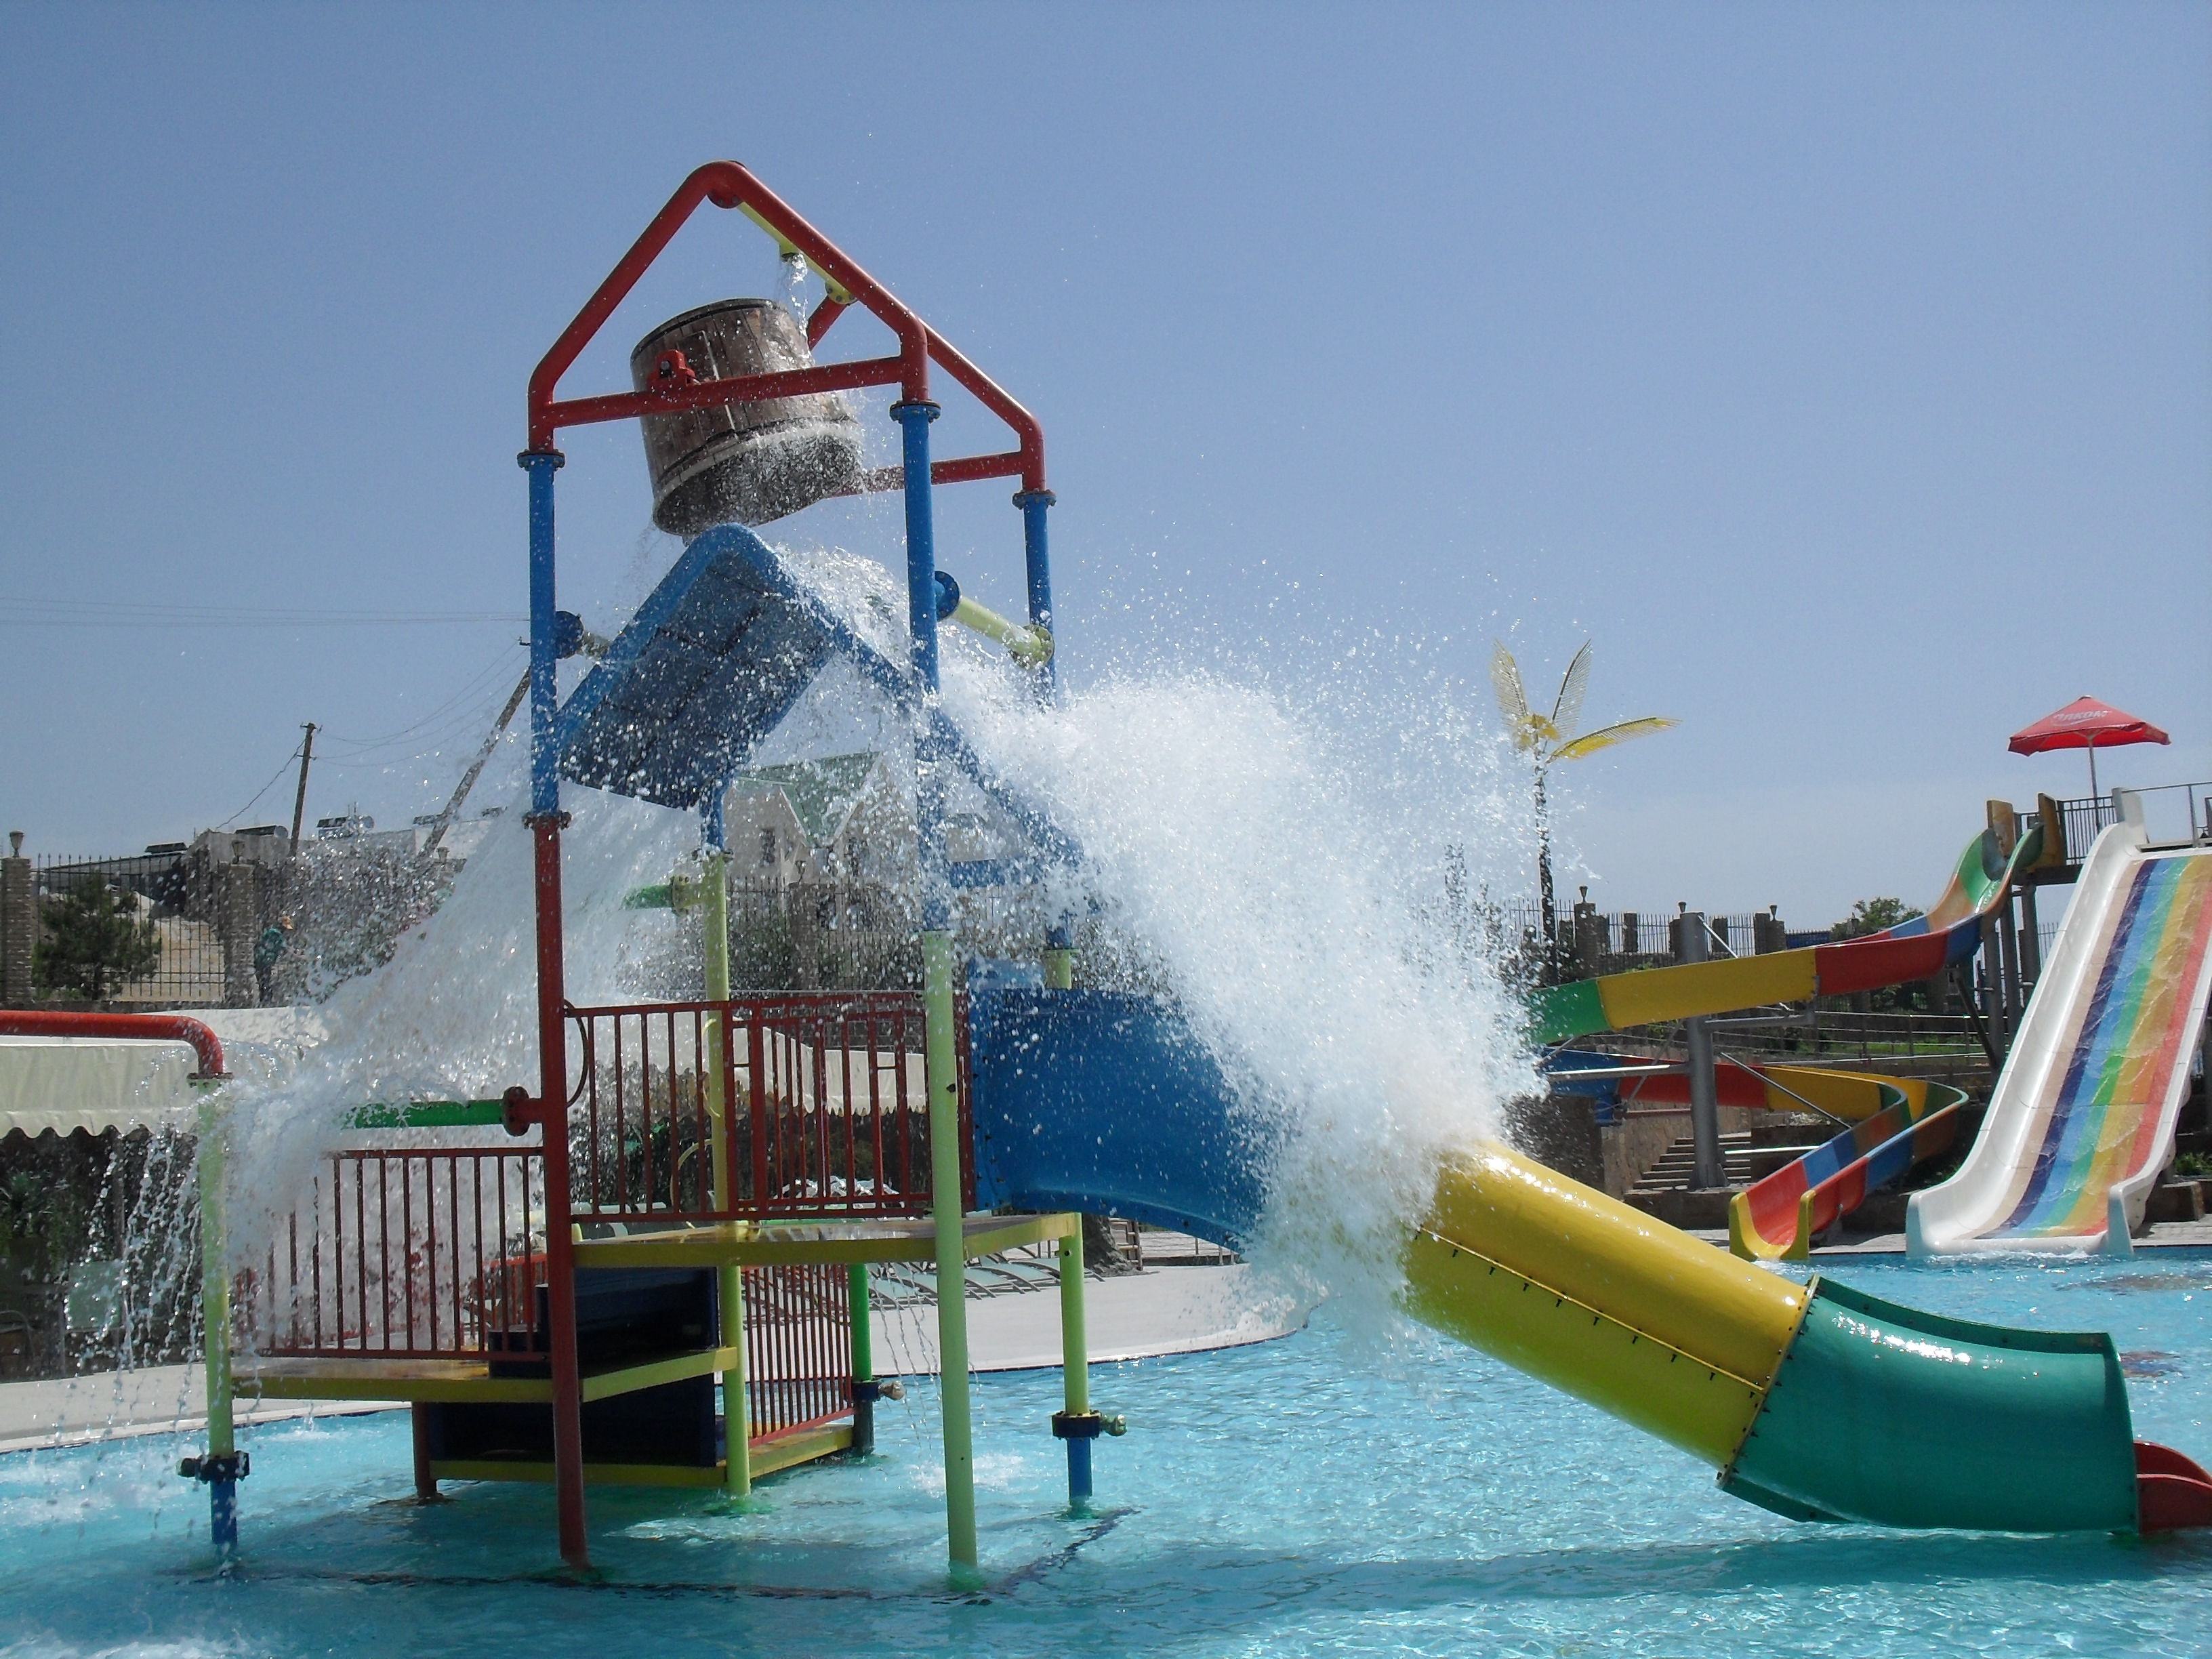 https://aquapark-koktebel.ru/wp-content/uploads/2020/04/Dom-na-vode.jpg